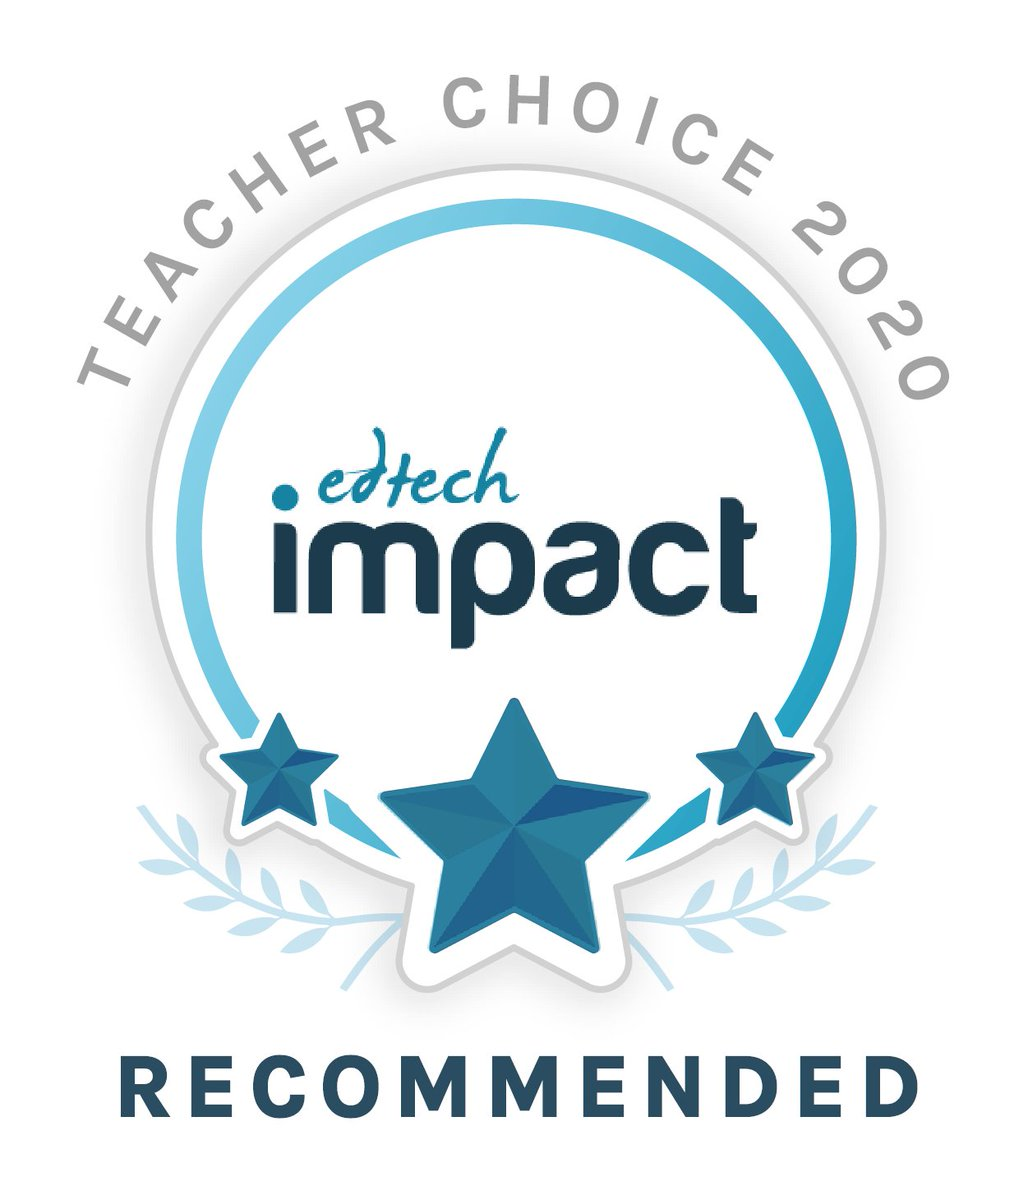 We're thrilled to announce we've been named in @TheEdtechImpact's 2020 Teacher Choice awards!🤗🌠🏄  Special THANK YOU to everyone for your amazing support and reviews! The #WakeletWave wouldn't be the same without you!💙  👉https://t.co/SjmgTAcynh https://t.co/3Nk5erv9H3